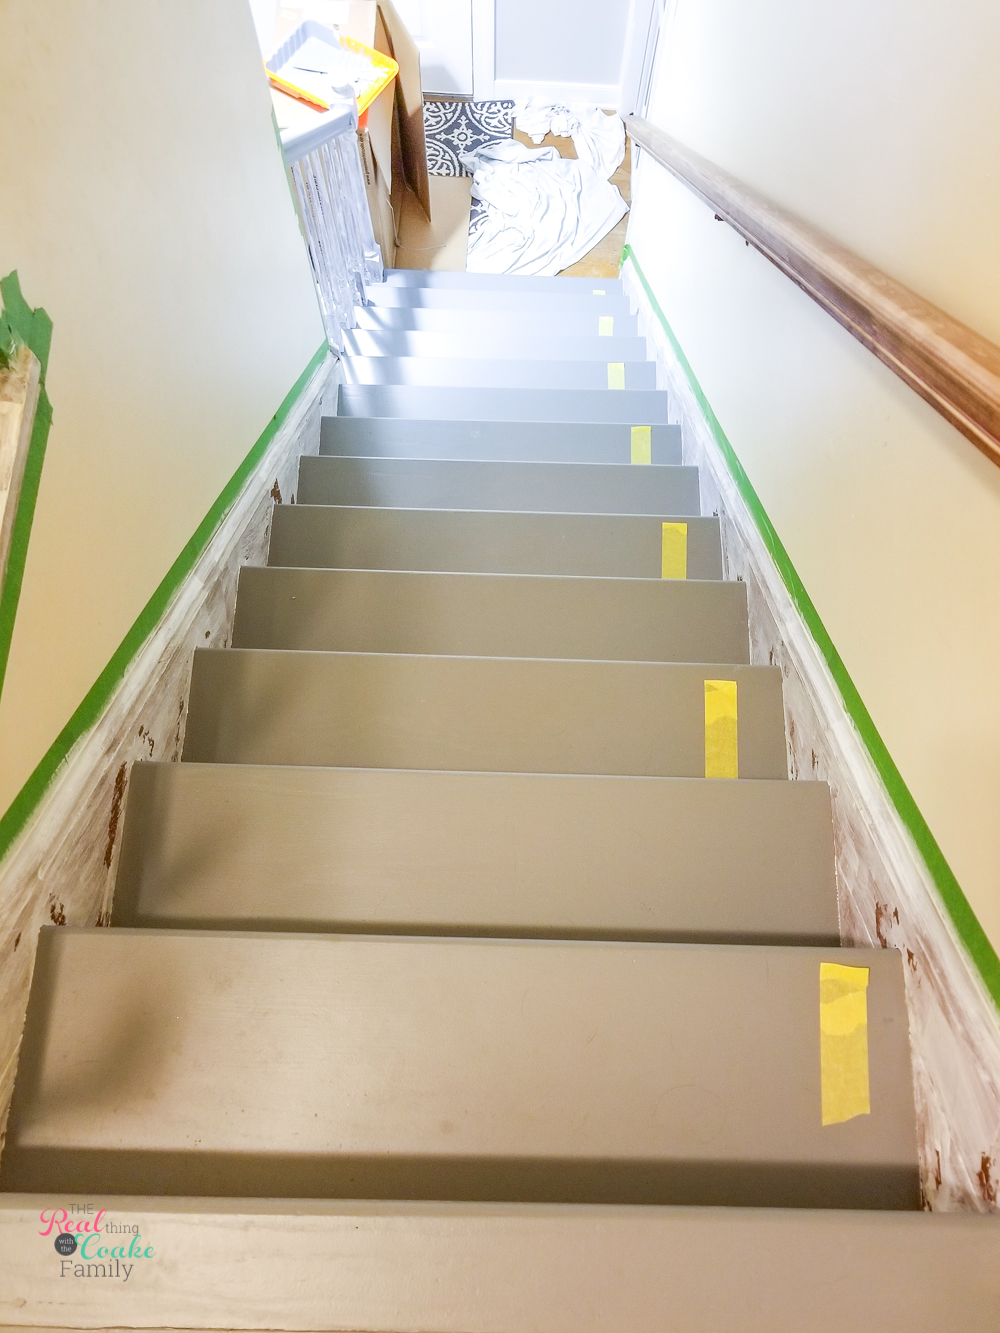 delicate painters tape on every other tread to show where to walk when painting stair treads